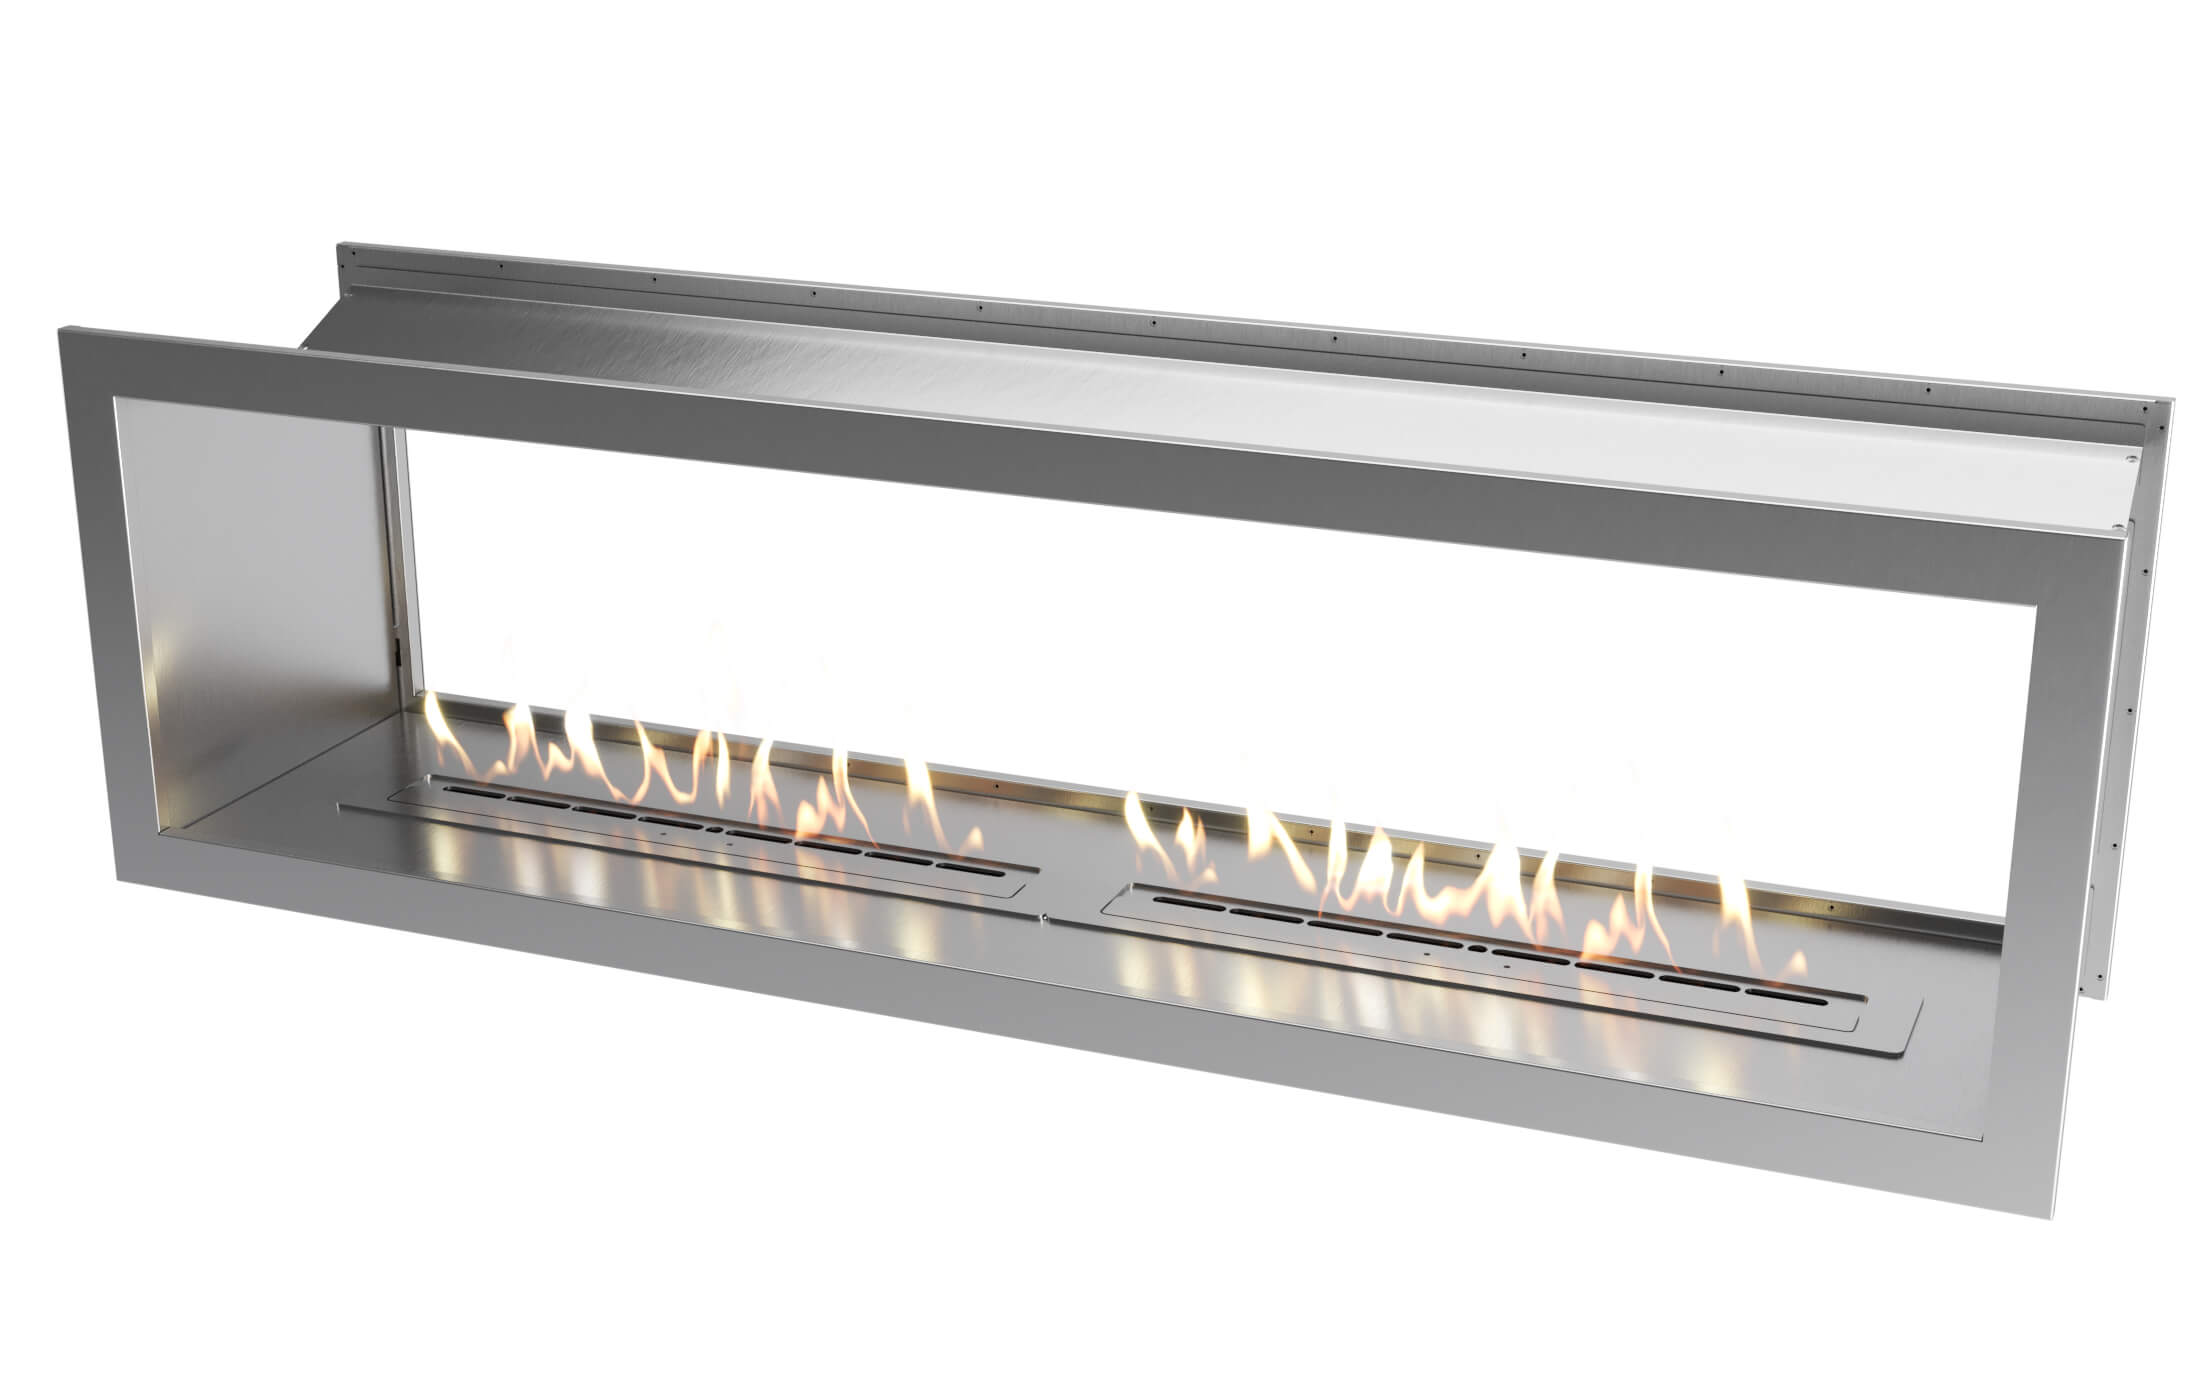 2000 Stainless steel double sided firebox with dual 800 slimline bio fuel burners